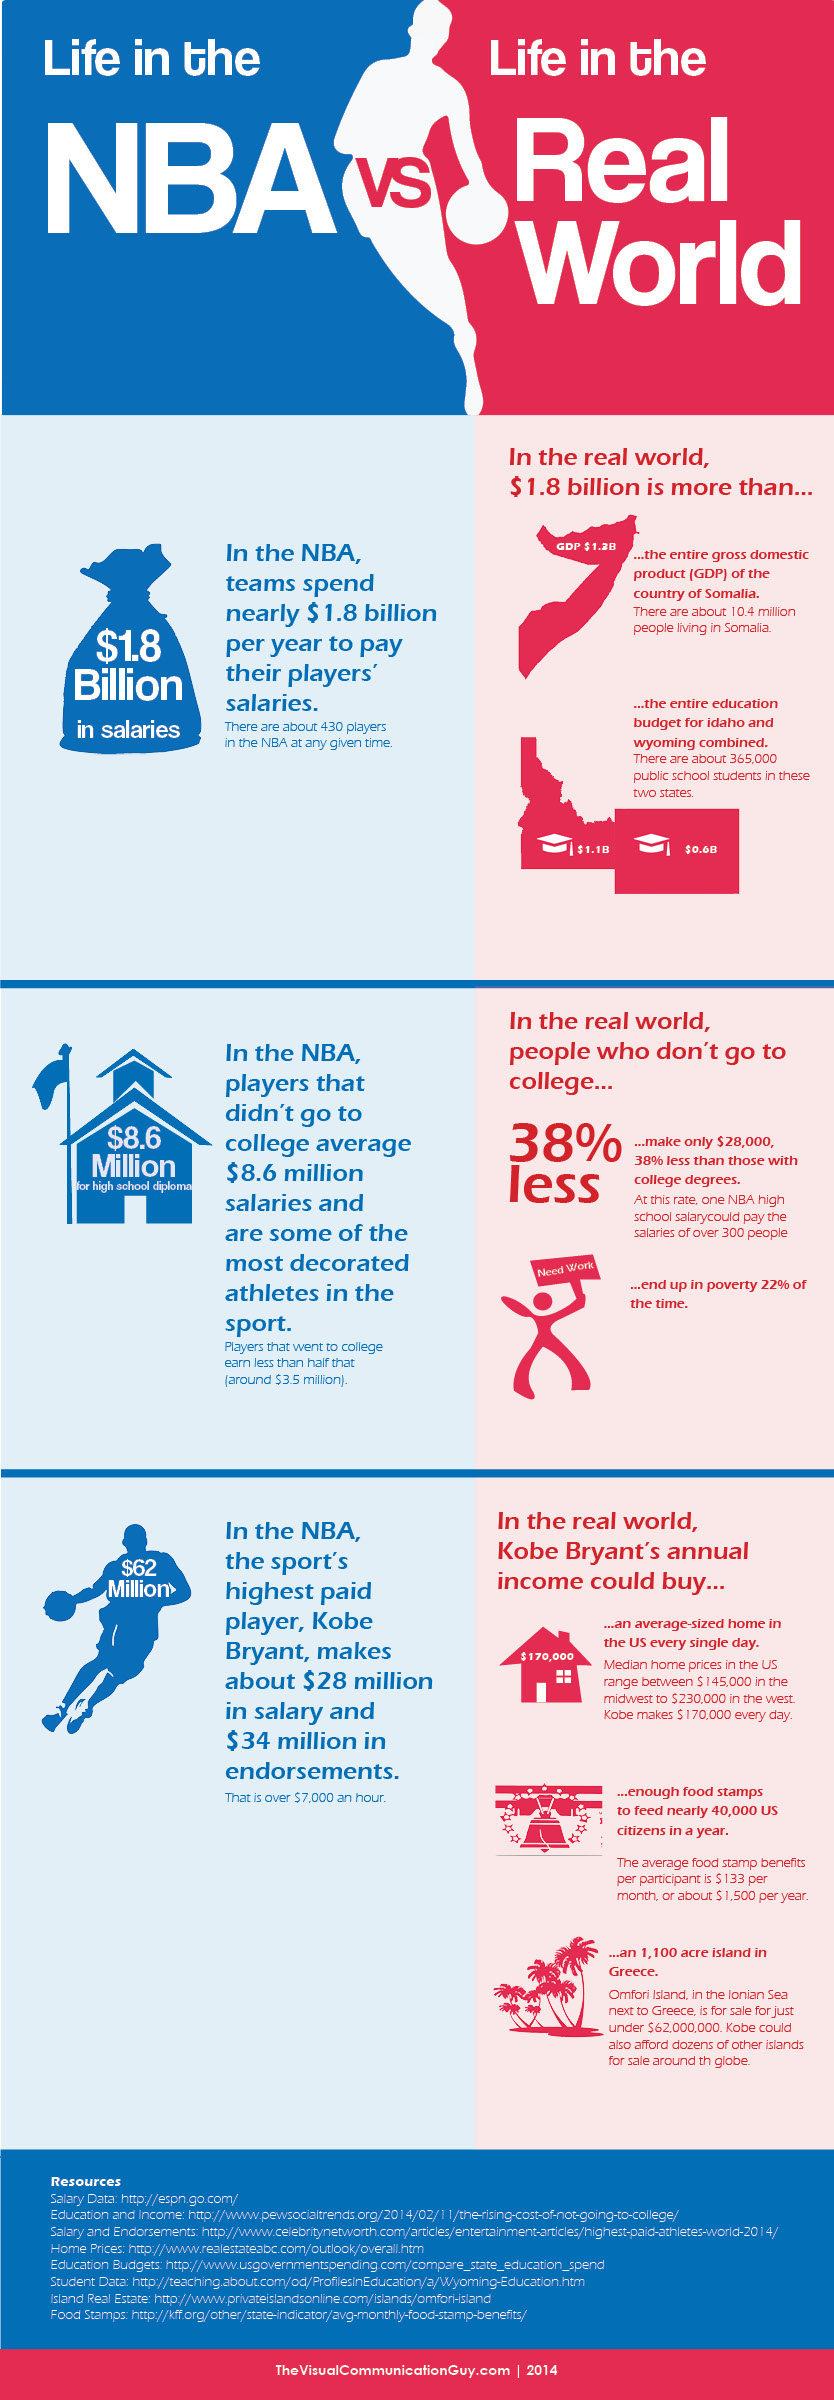 Life in the NBA: NBA Salaries compared to the real world